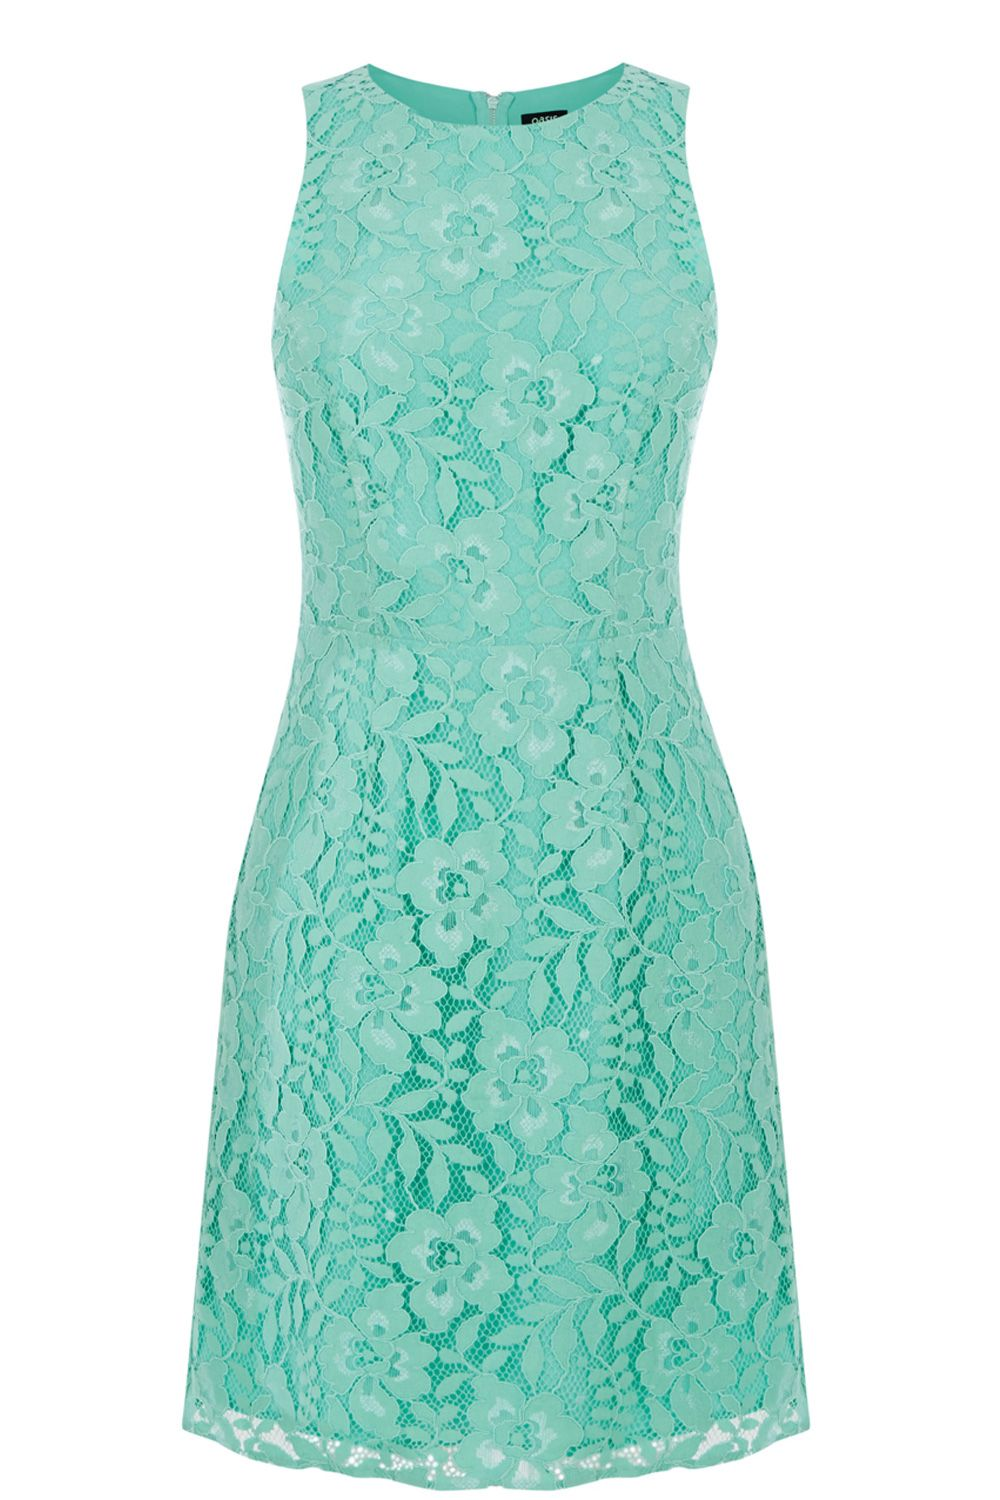 Green Sienna Lace Dress | Oasis | Ideas for the House | Pinterest